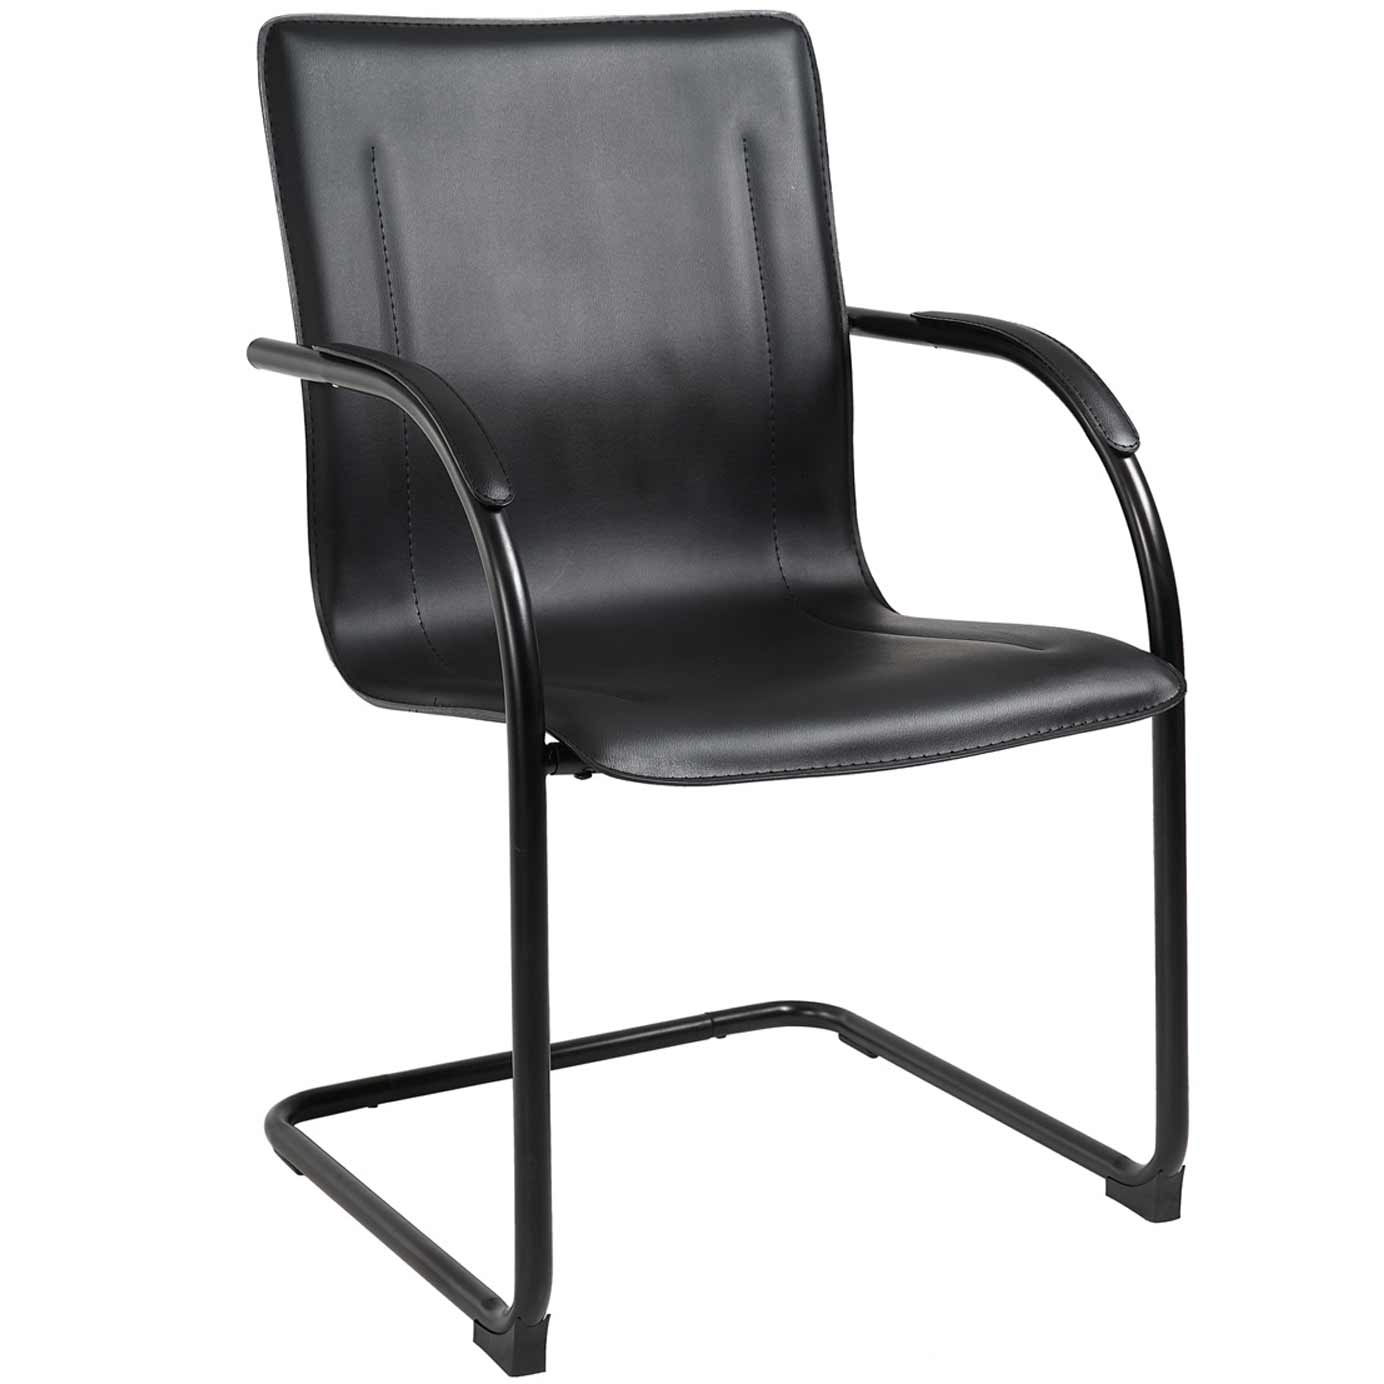 Used solid black guest chair